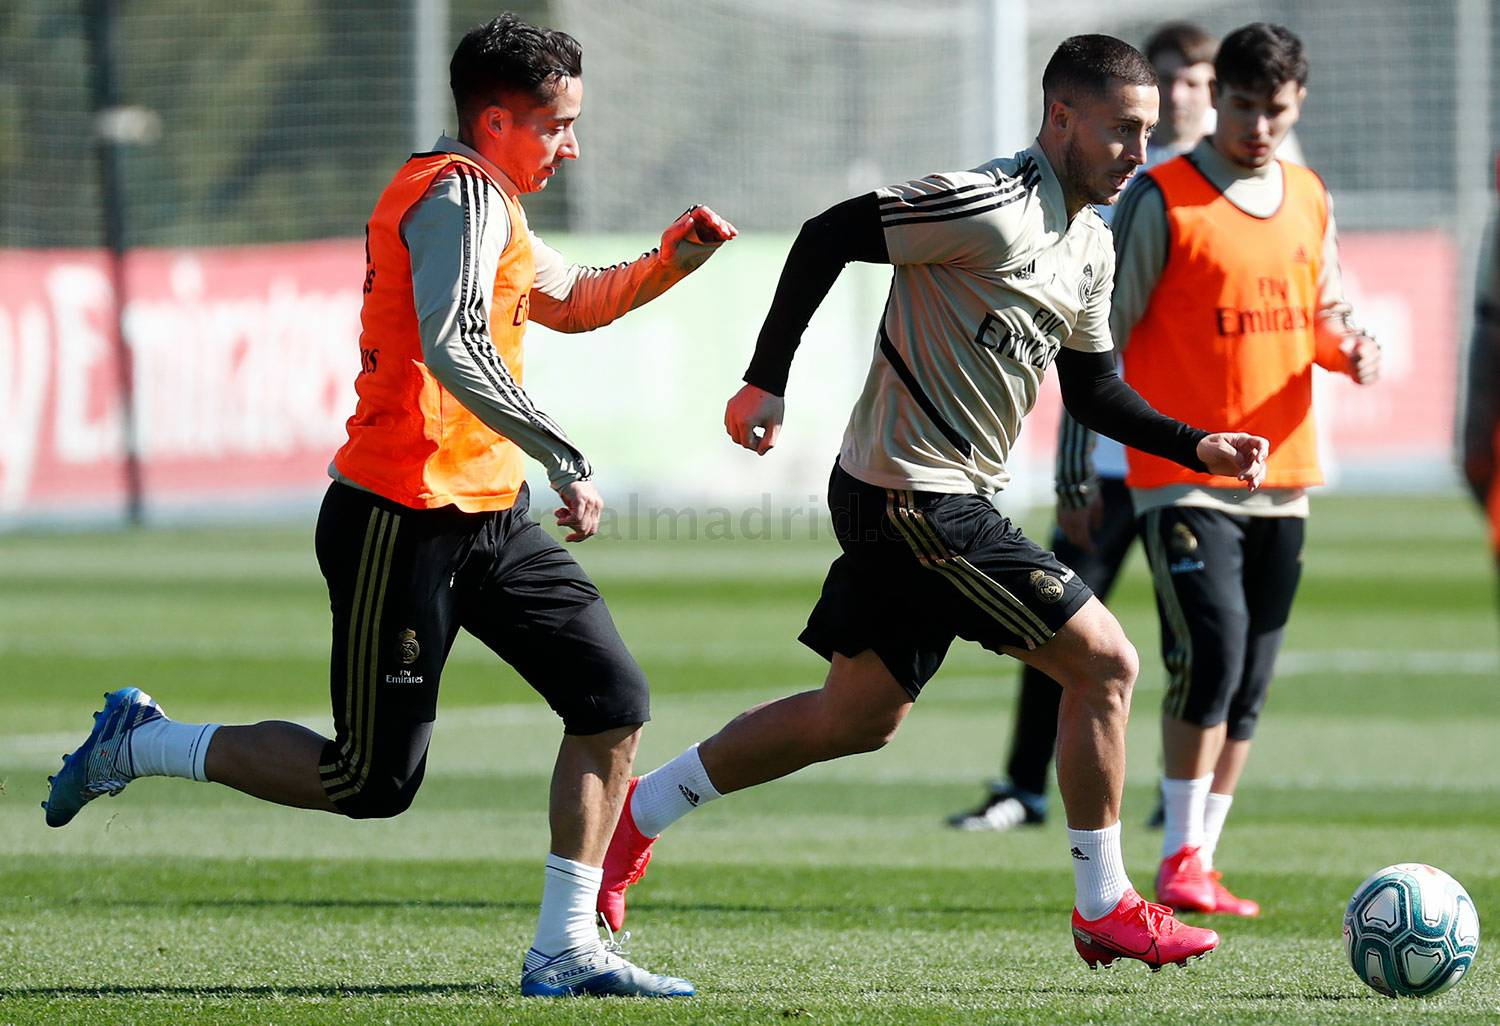 Real Madrid - Entrenamiento del Real Madrid  - 19-02-2020